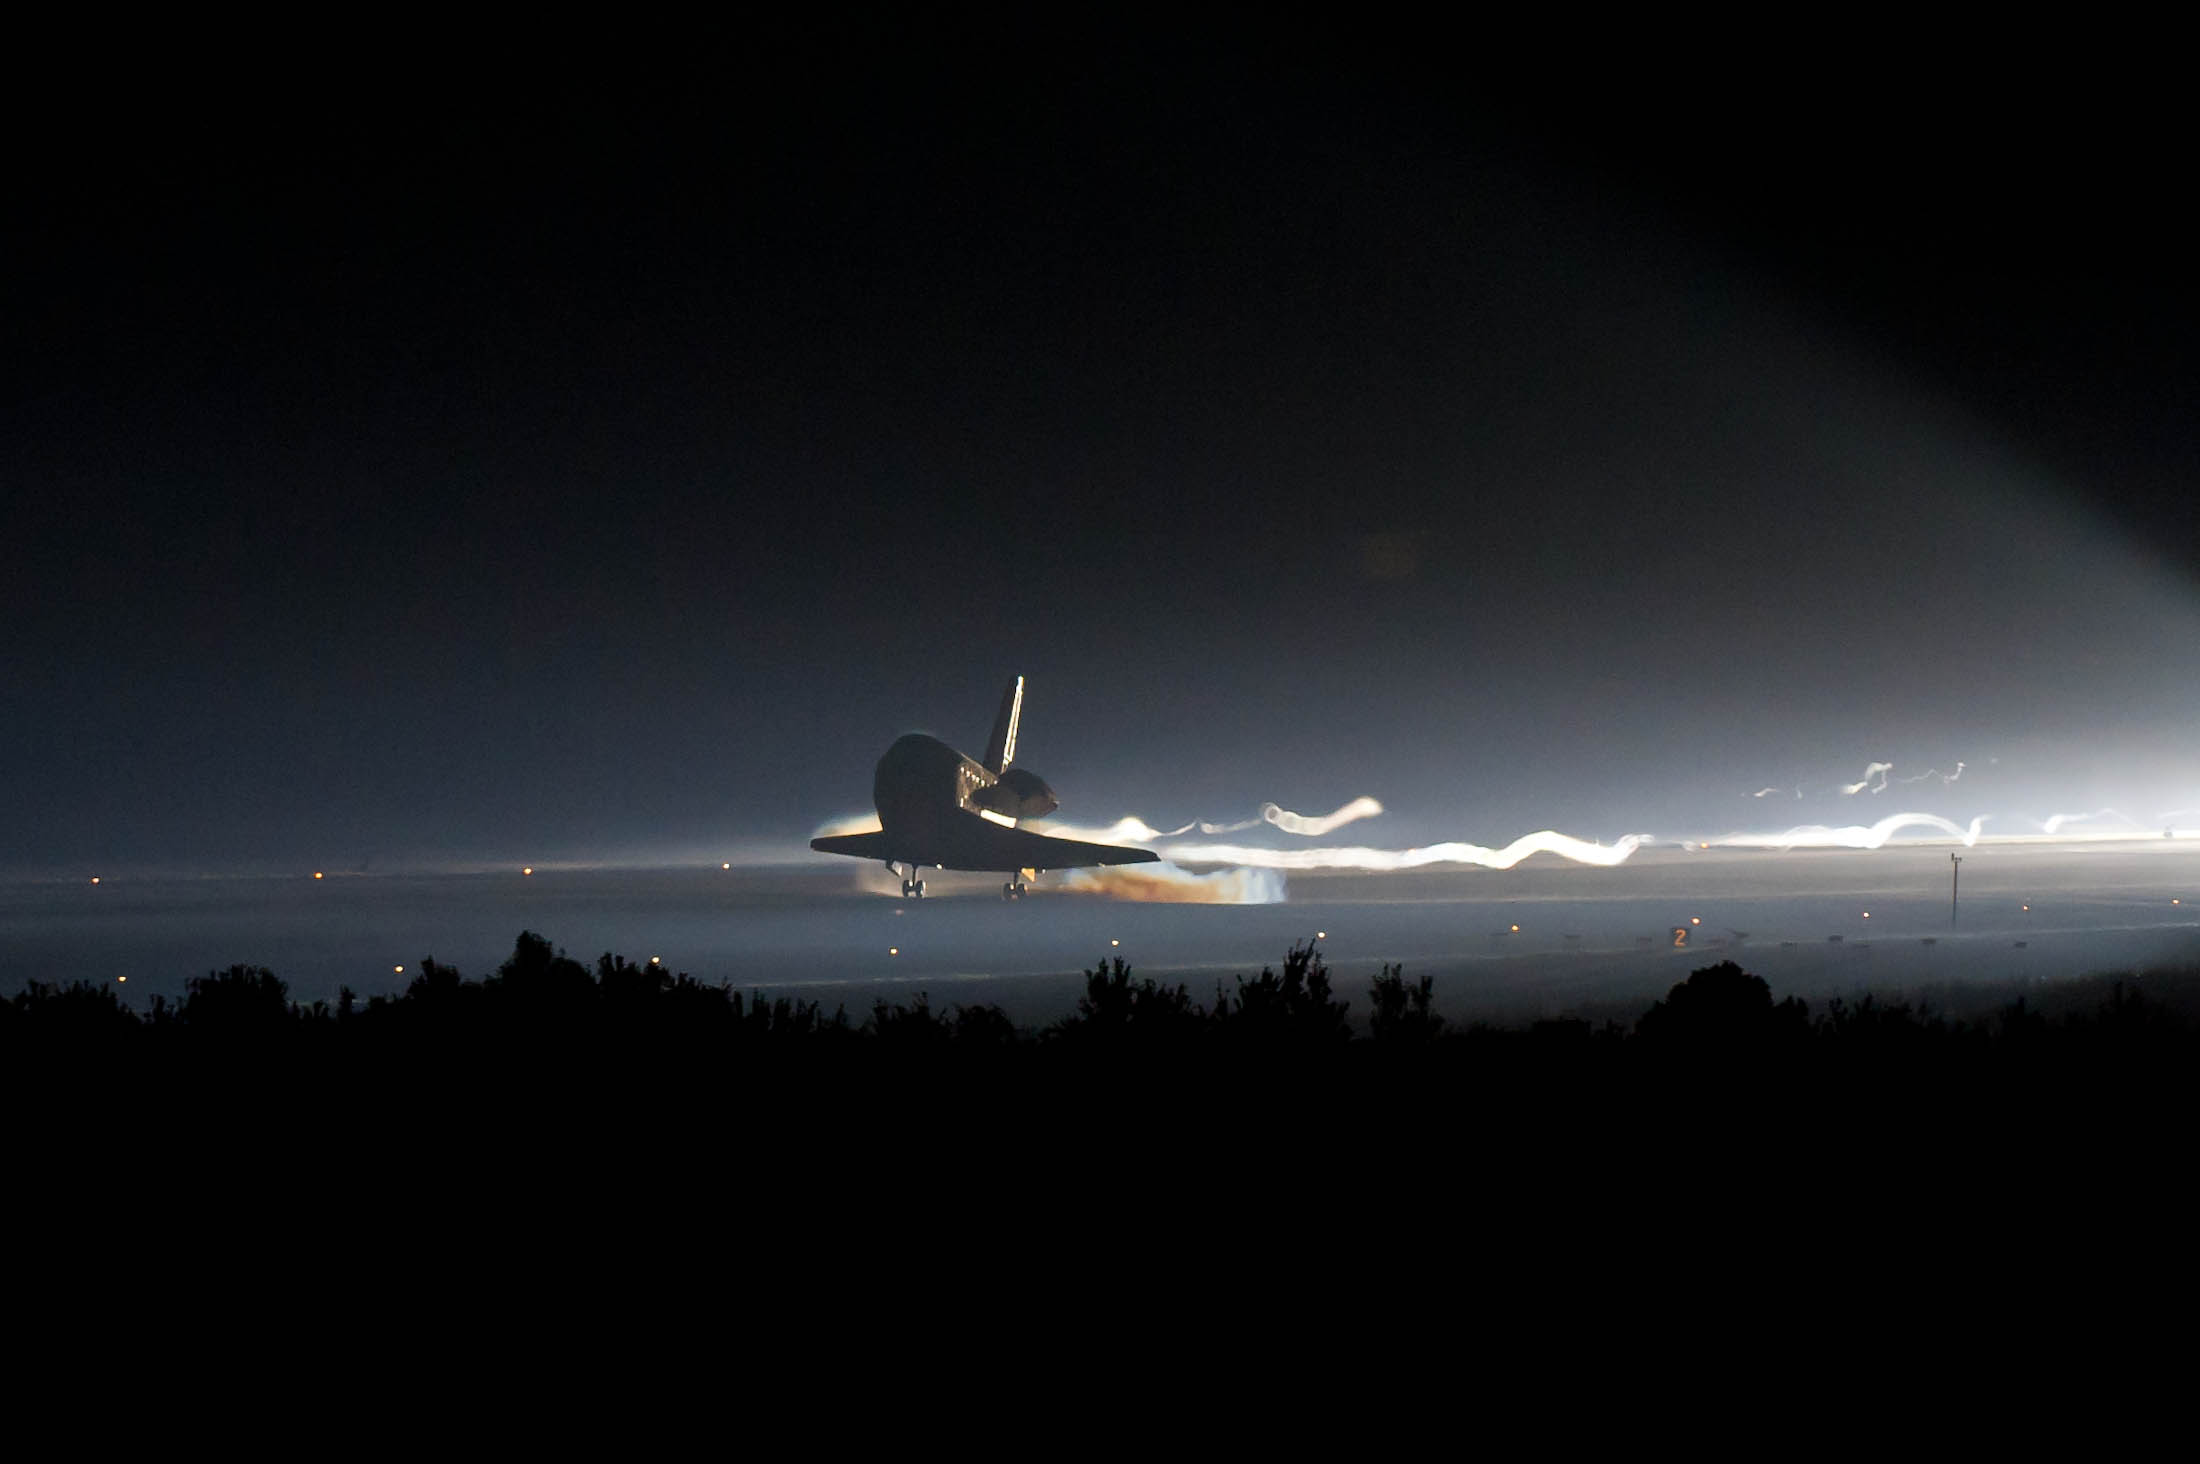 Half of Americans Think Space Shuttle Retirement Bad for US, Poll Finds